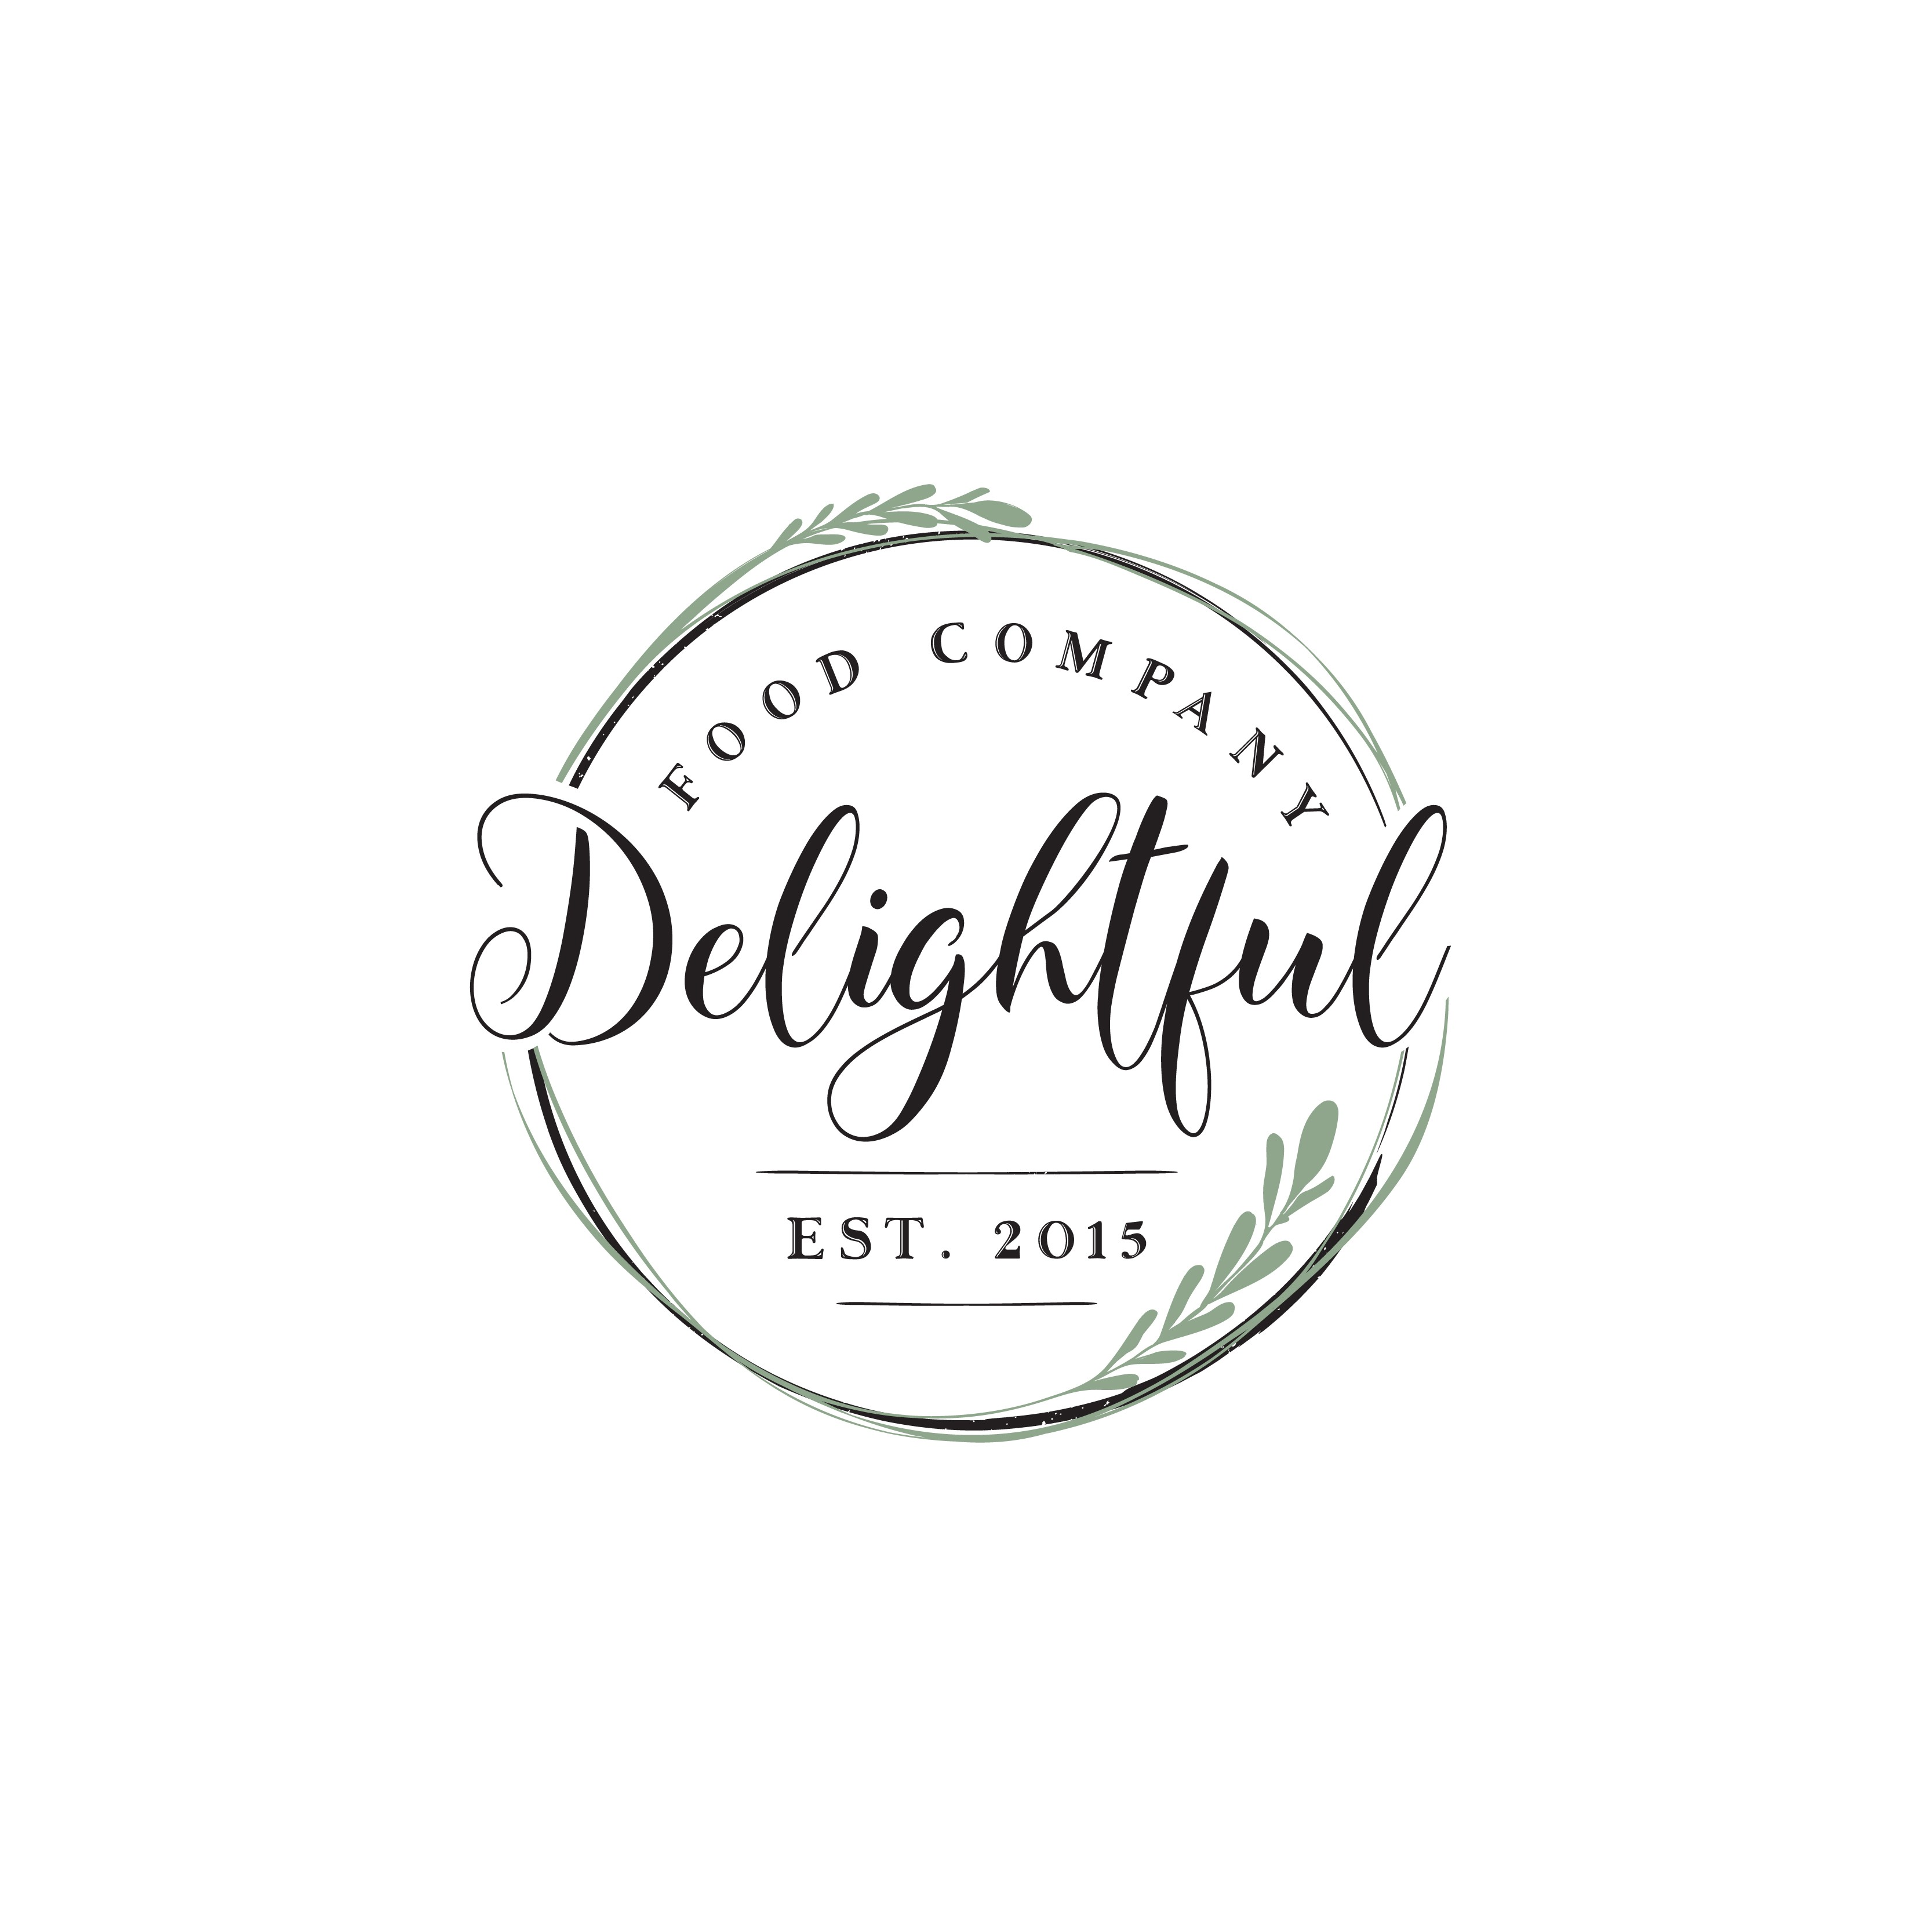 Create a cool logo for Delightful Food Company